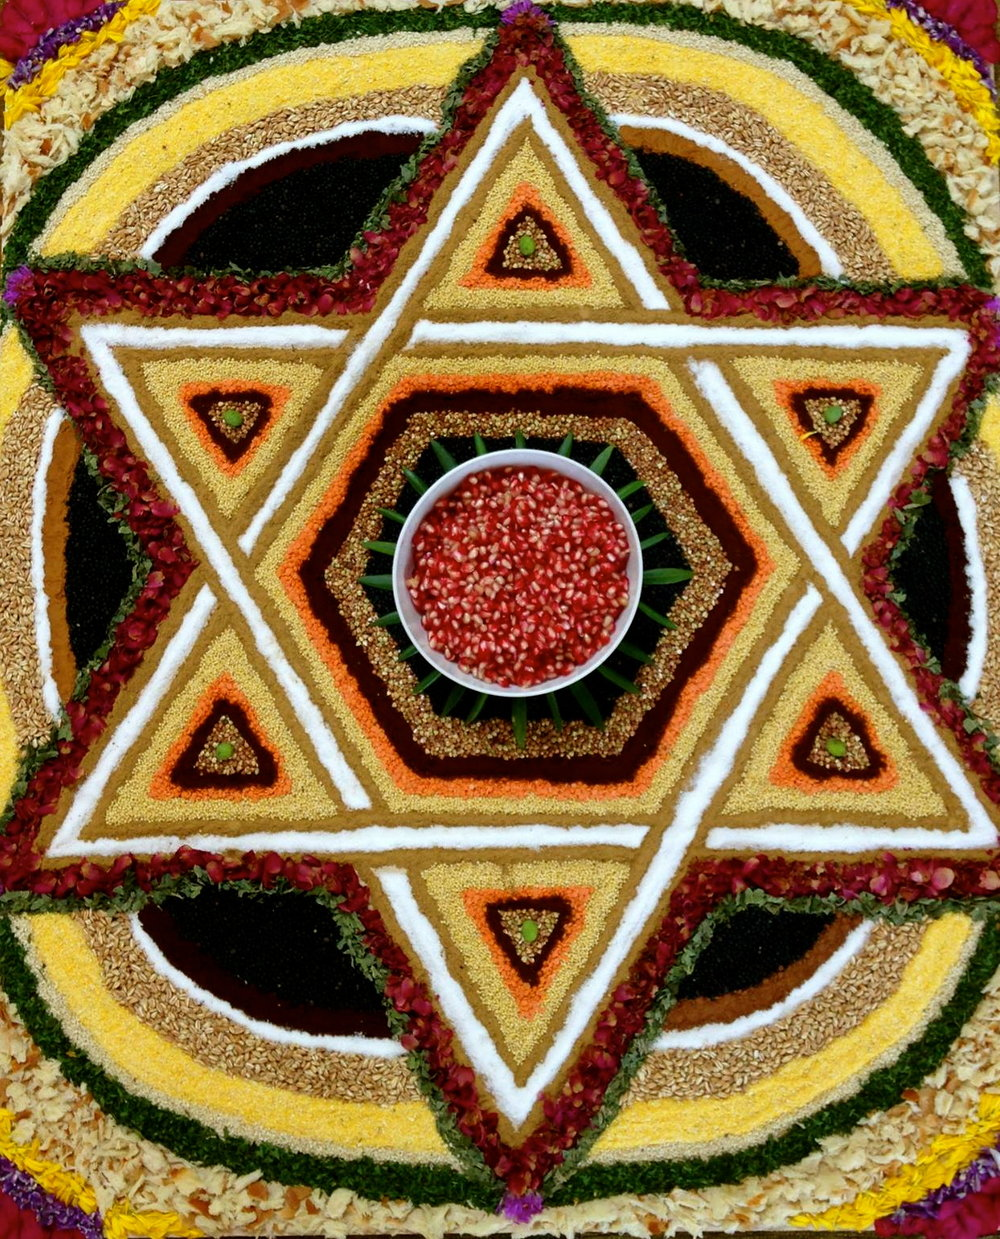 Star of david crafted with ancestral foods by participants in Hillula: Ancestral healing in jewish traditions workshop with taya shere and daniel foor